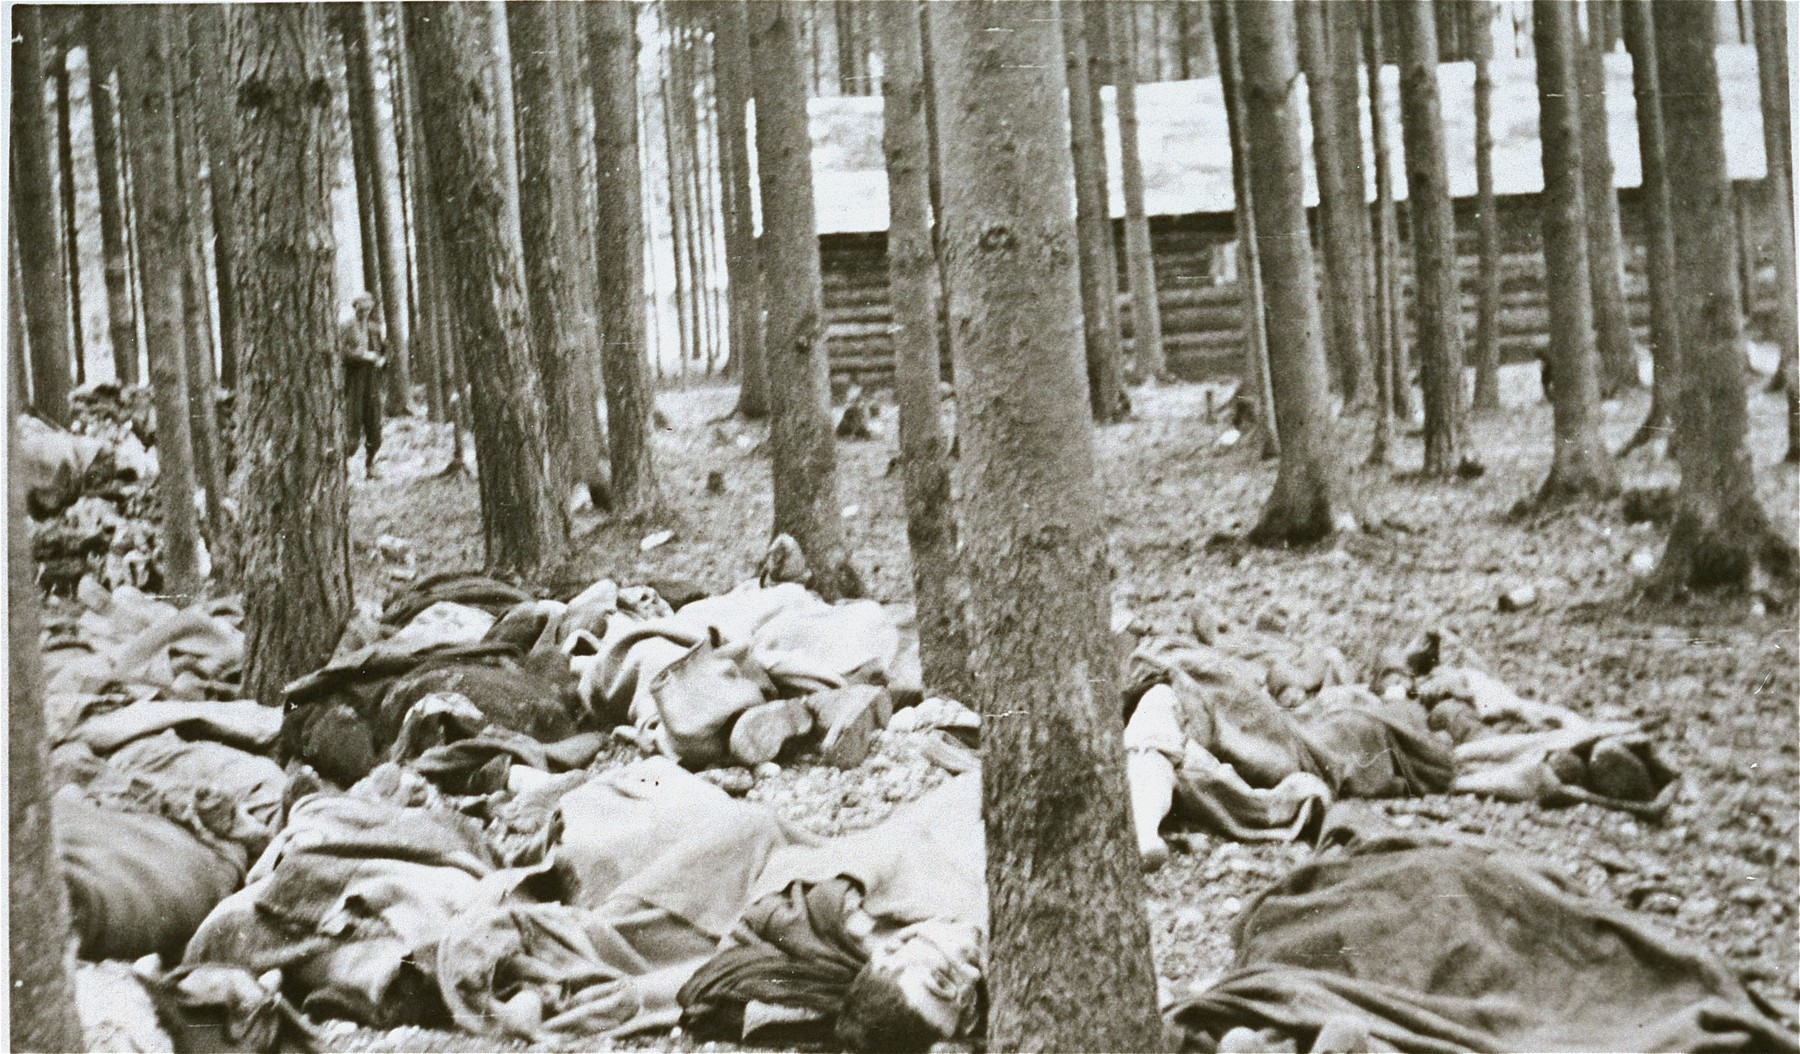 Corpses in the Gunskirchen concentration camp.